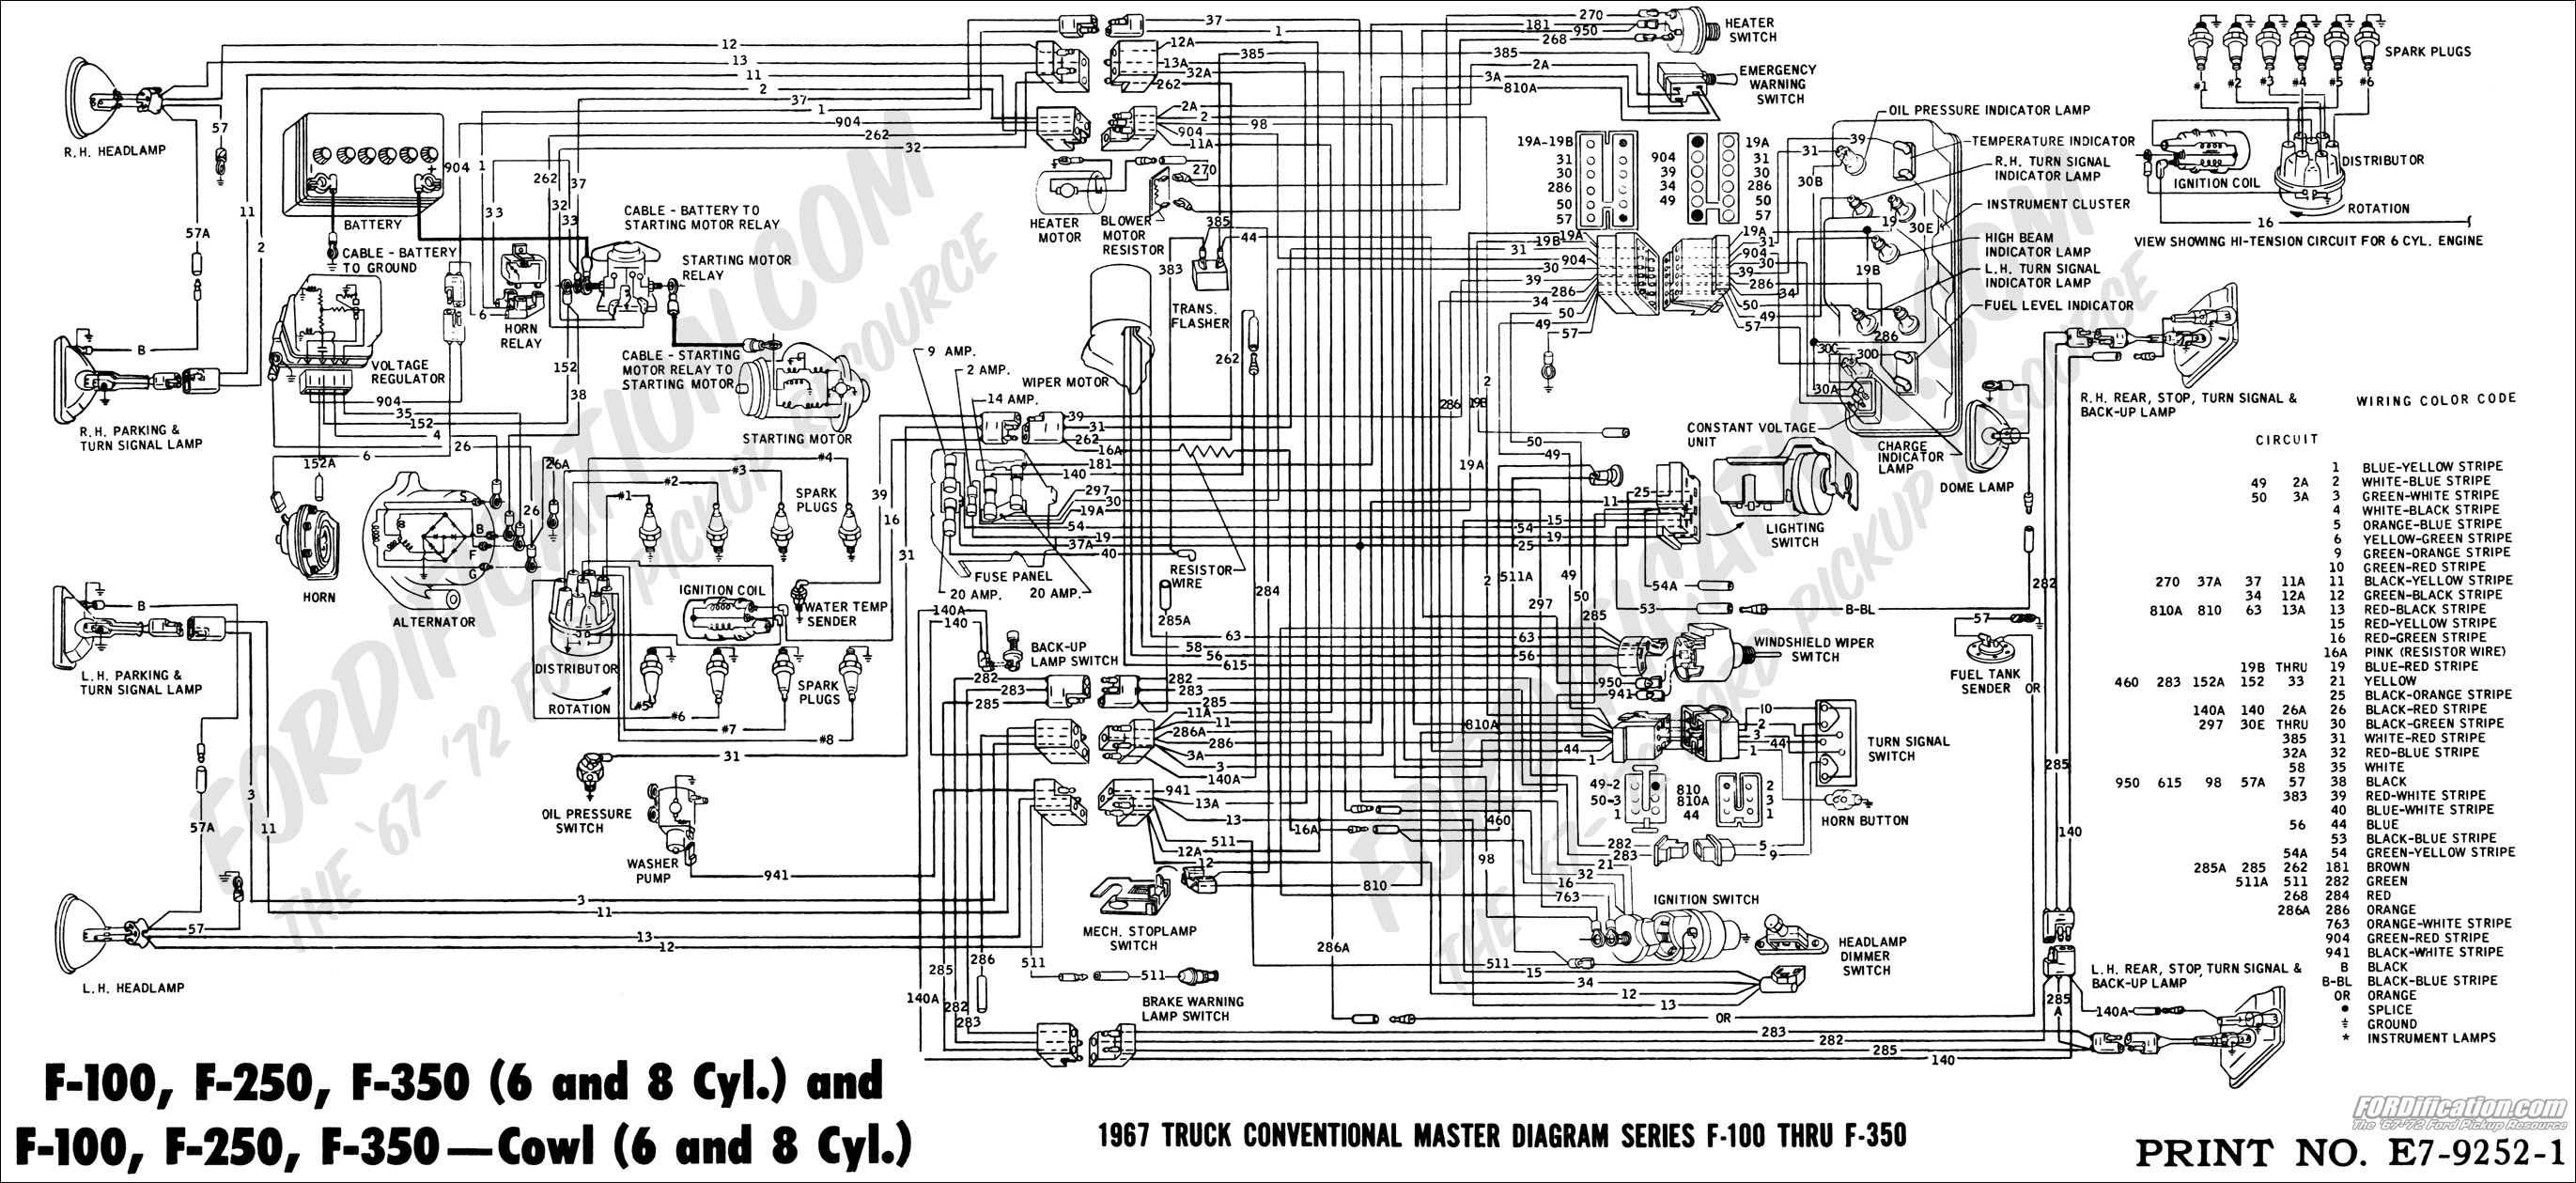 92 gmc van wiring diagram free picture wiring library rh 84 informaticaonlinetraining co